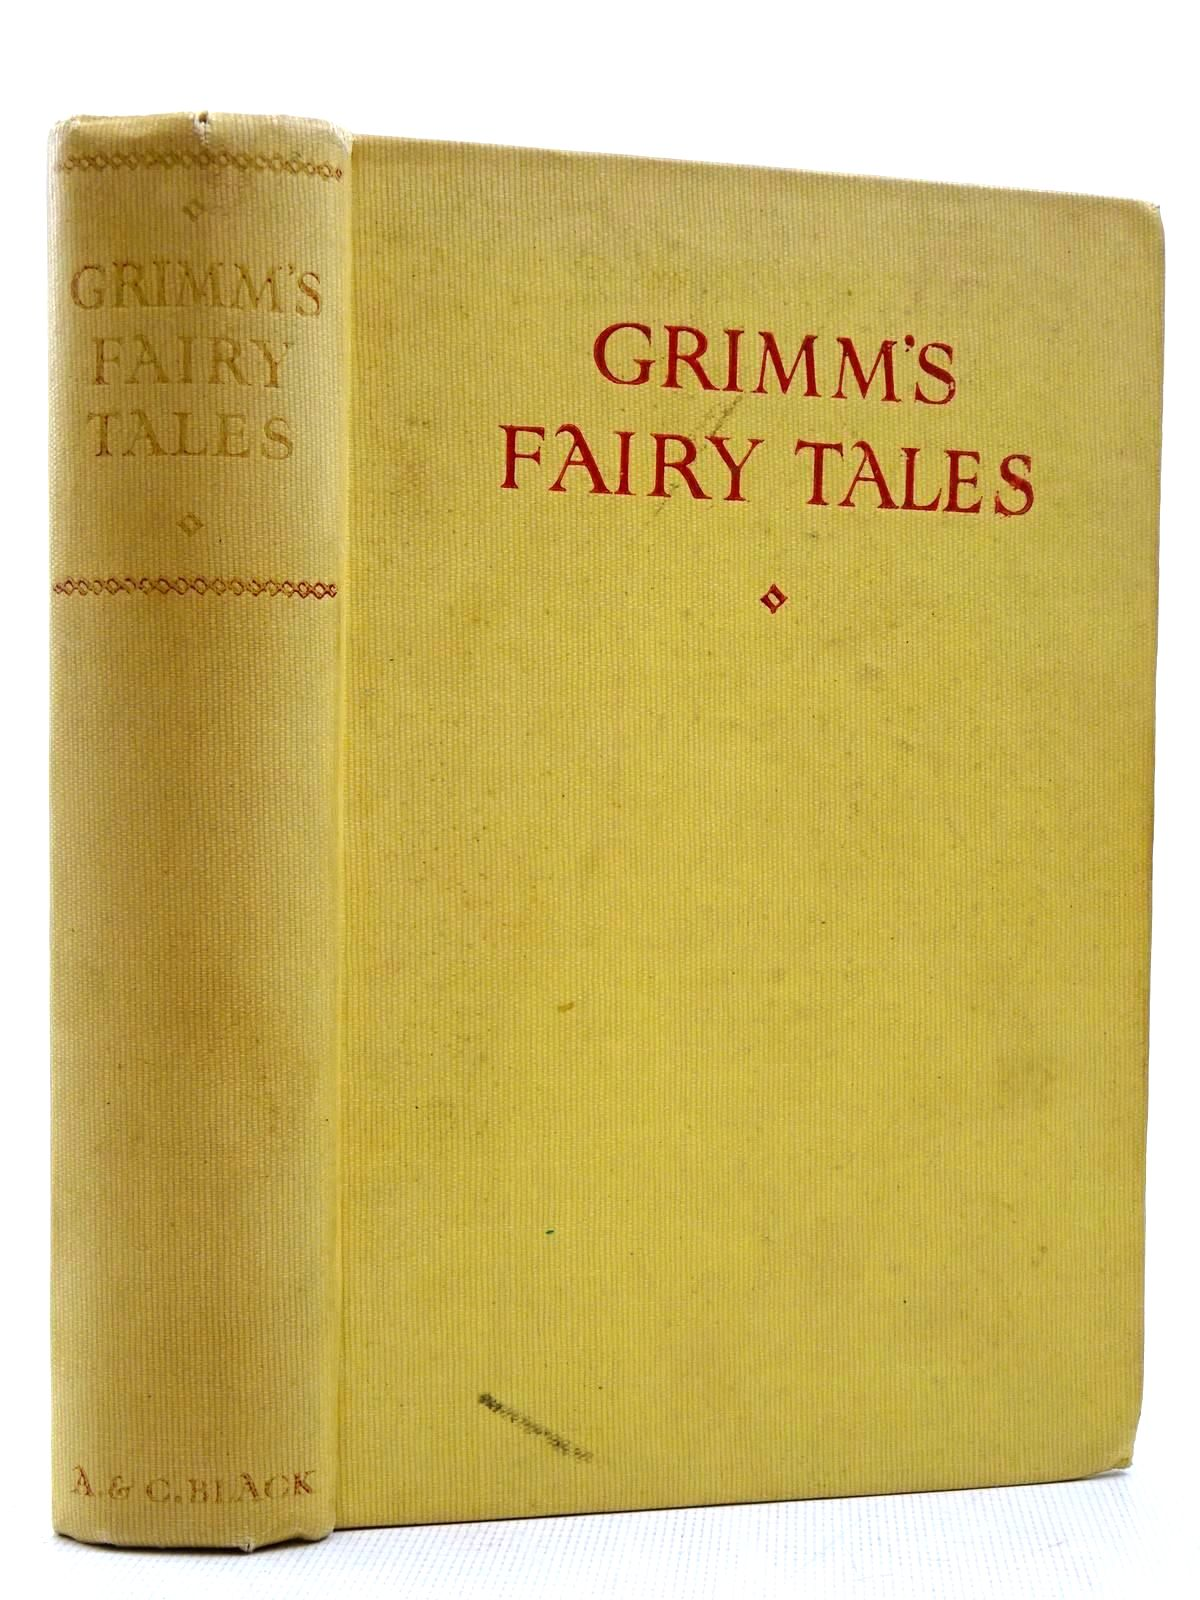 Photo of GRIMM'S FAIRY TALES written by Grimm, Brothers illustrated by Folkard, Charles published by Adam & Charles Black (STOCK CODE: 2129036)  for sale by Stella & Rose's Books